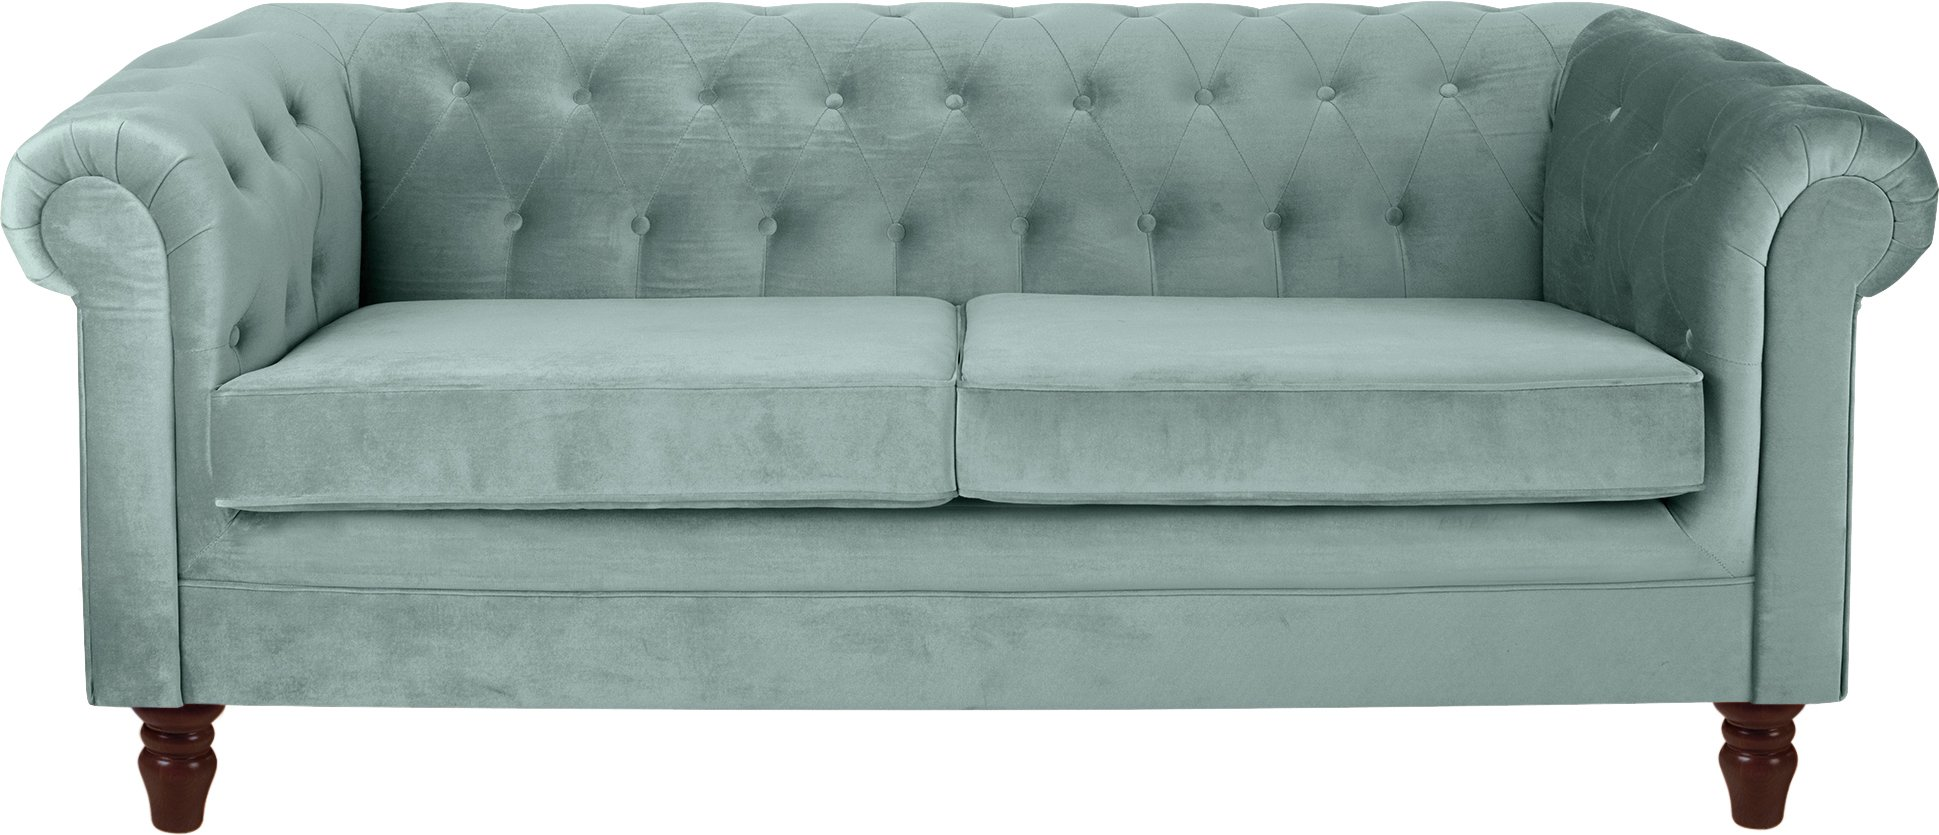 Buy Heart of House Chesterfield 3 Seater Fabric Sofa Duck Egg at Argos co uk Your Online